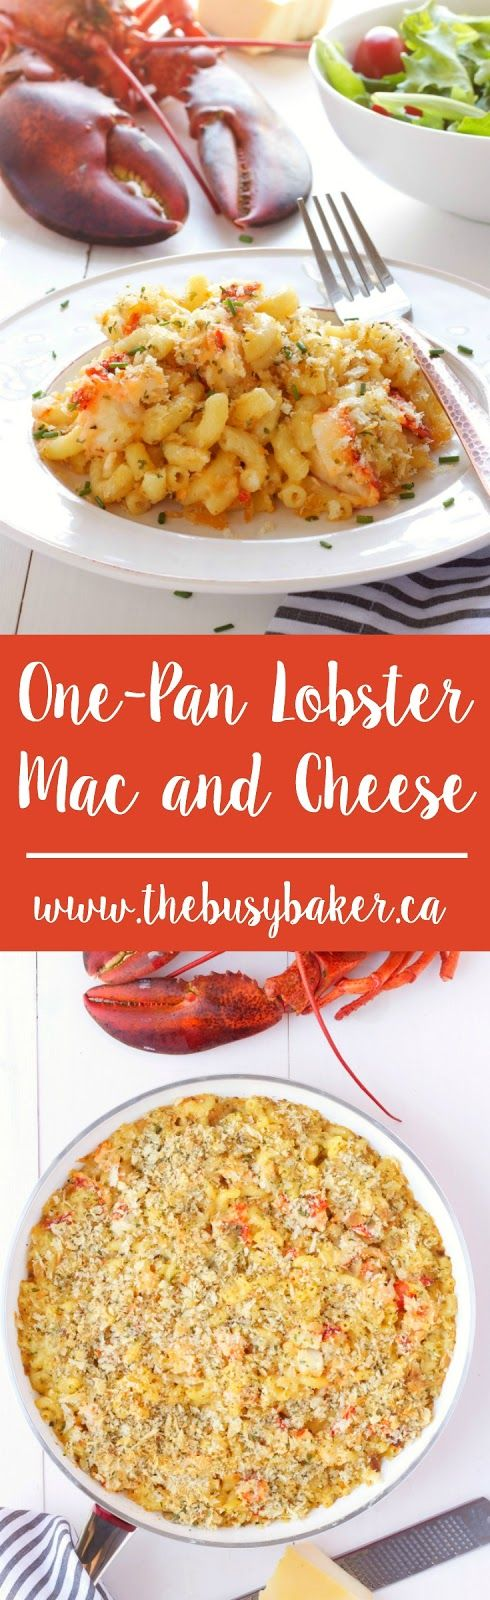 This One-Pan Lobster Mac and Cheese is the perfect Father's Day feast!  www.thebusybaker.ca